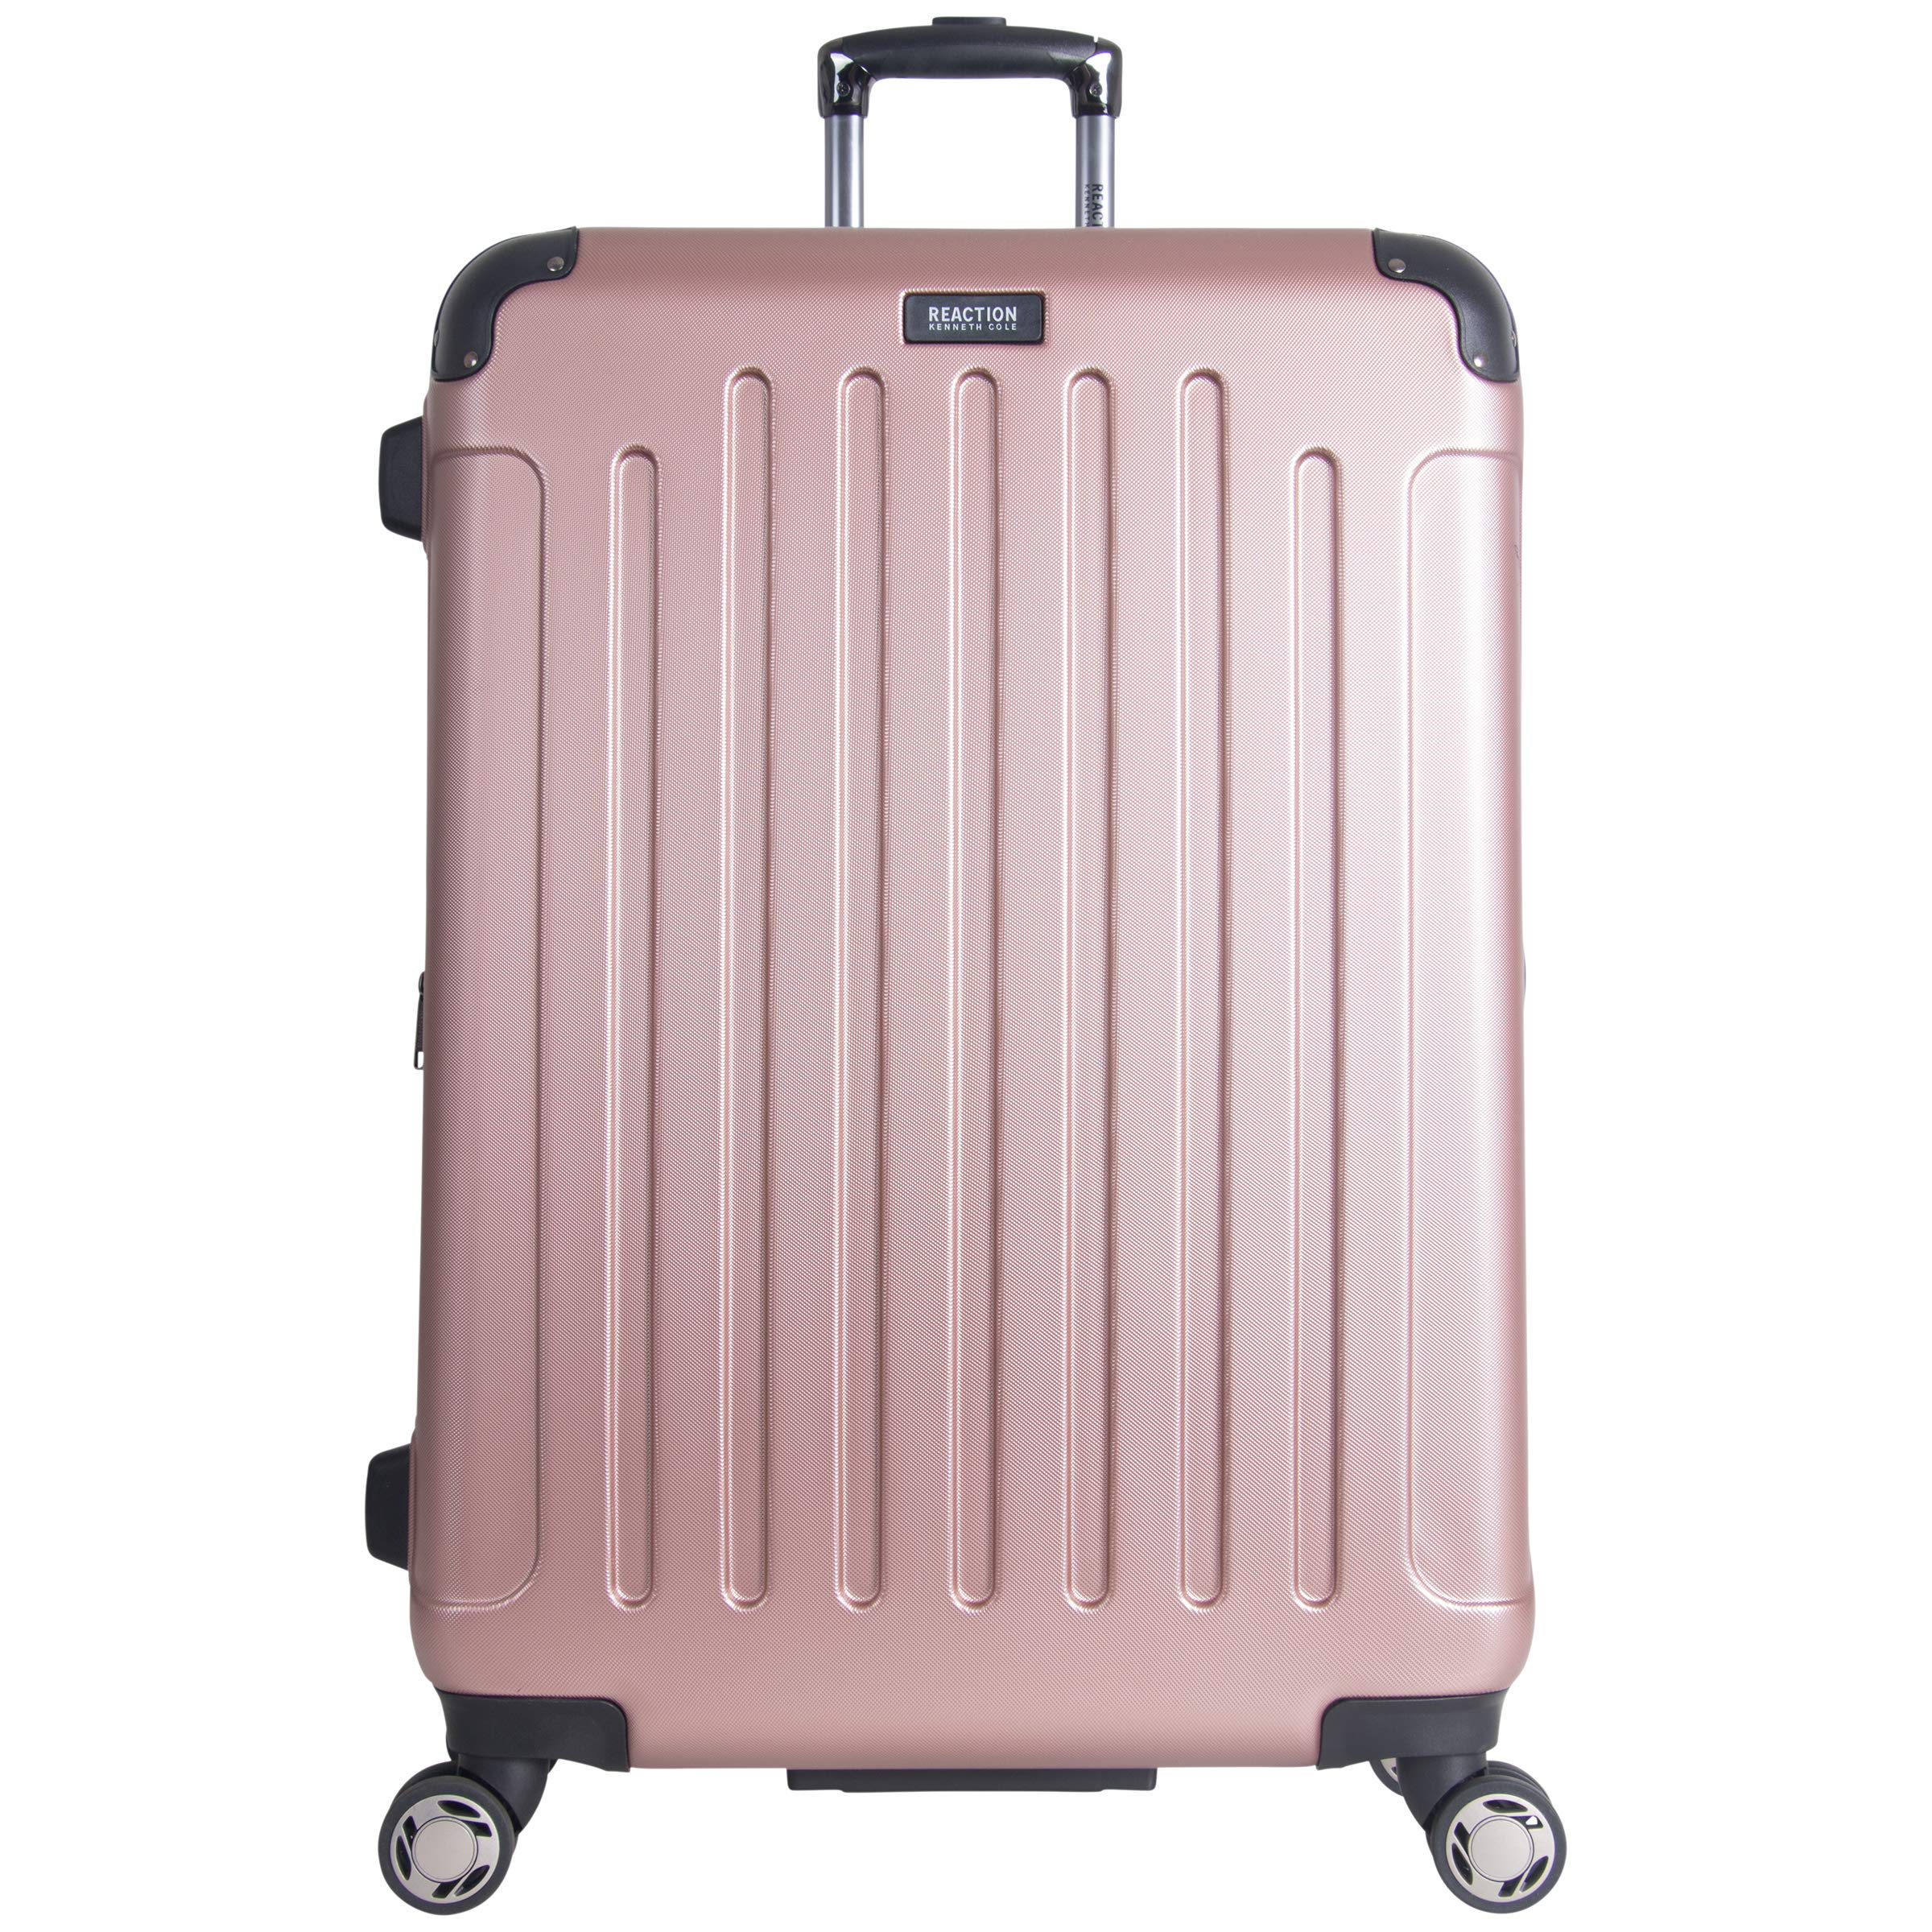 Kenneth Cole Reaction Renegade 28'' Hardside Expandable 8-Wheel Spinner Checked Luggage, Rose Gold